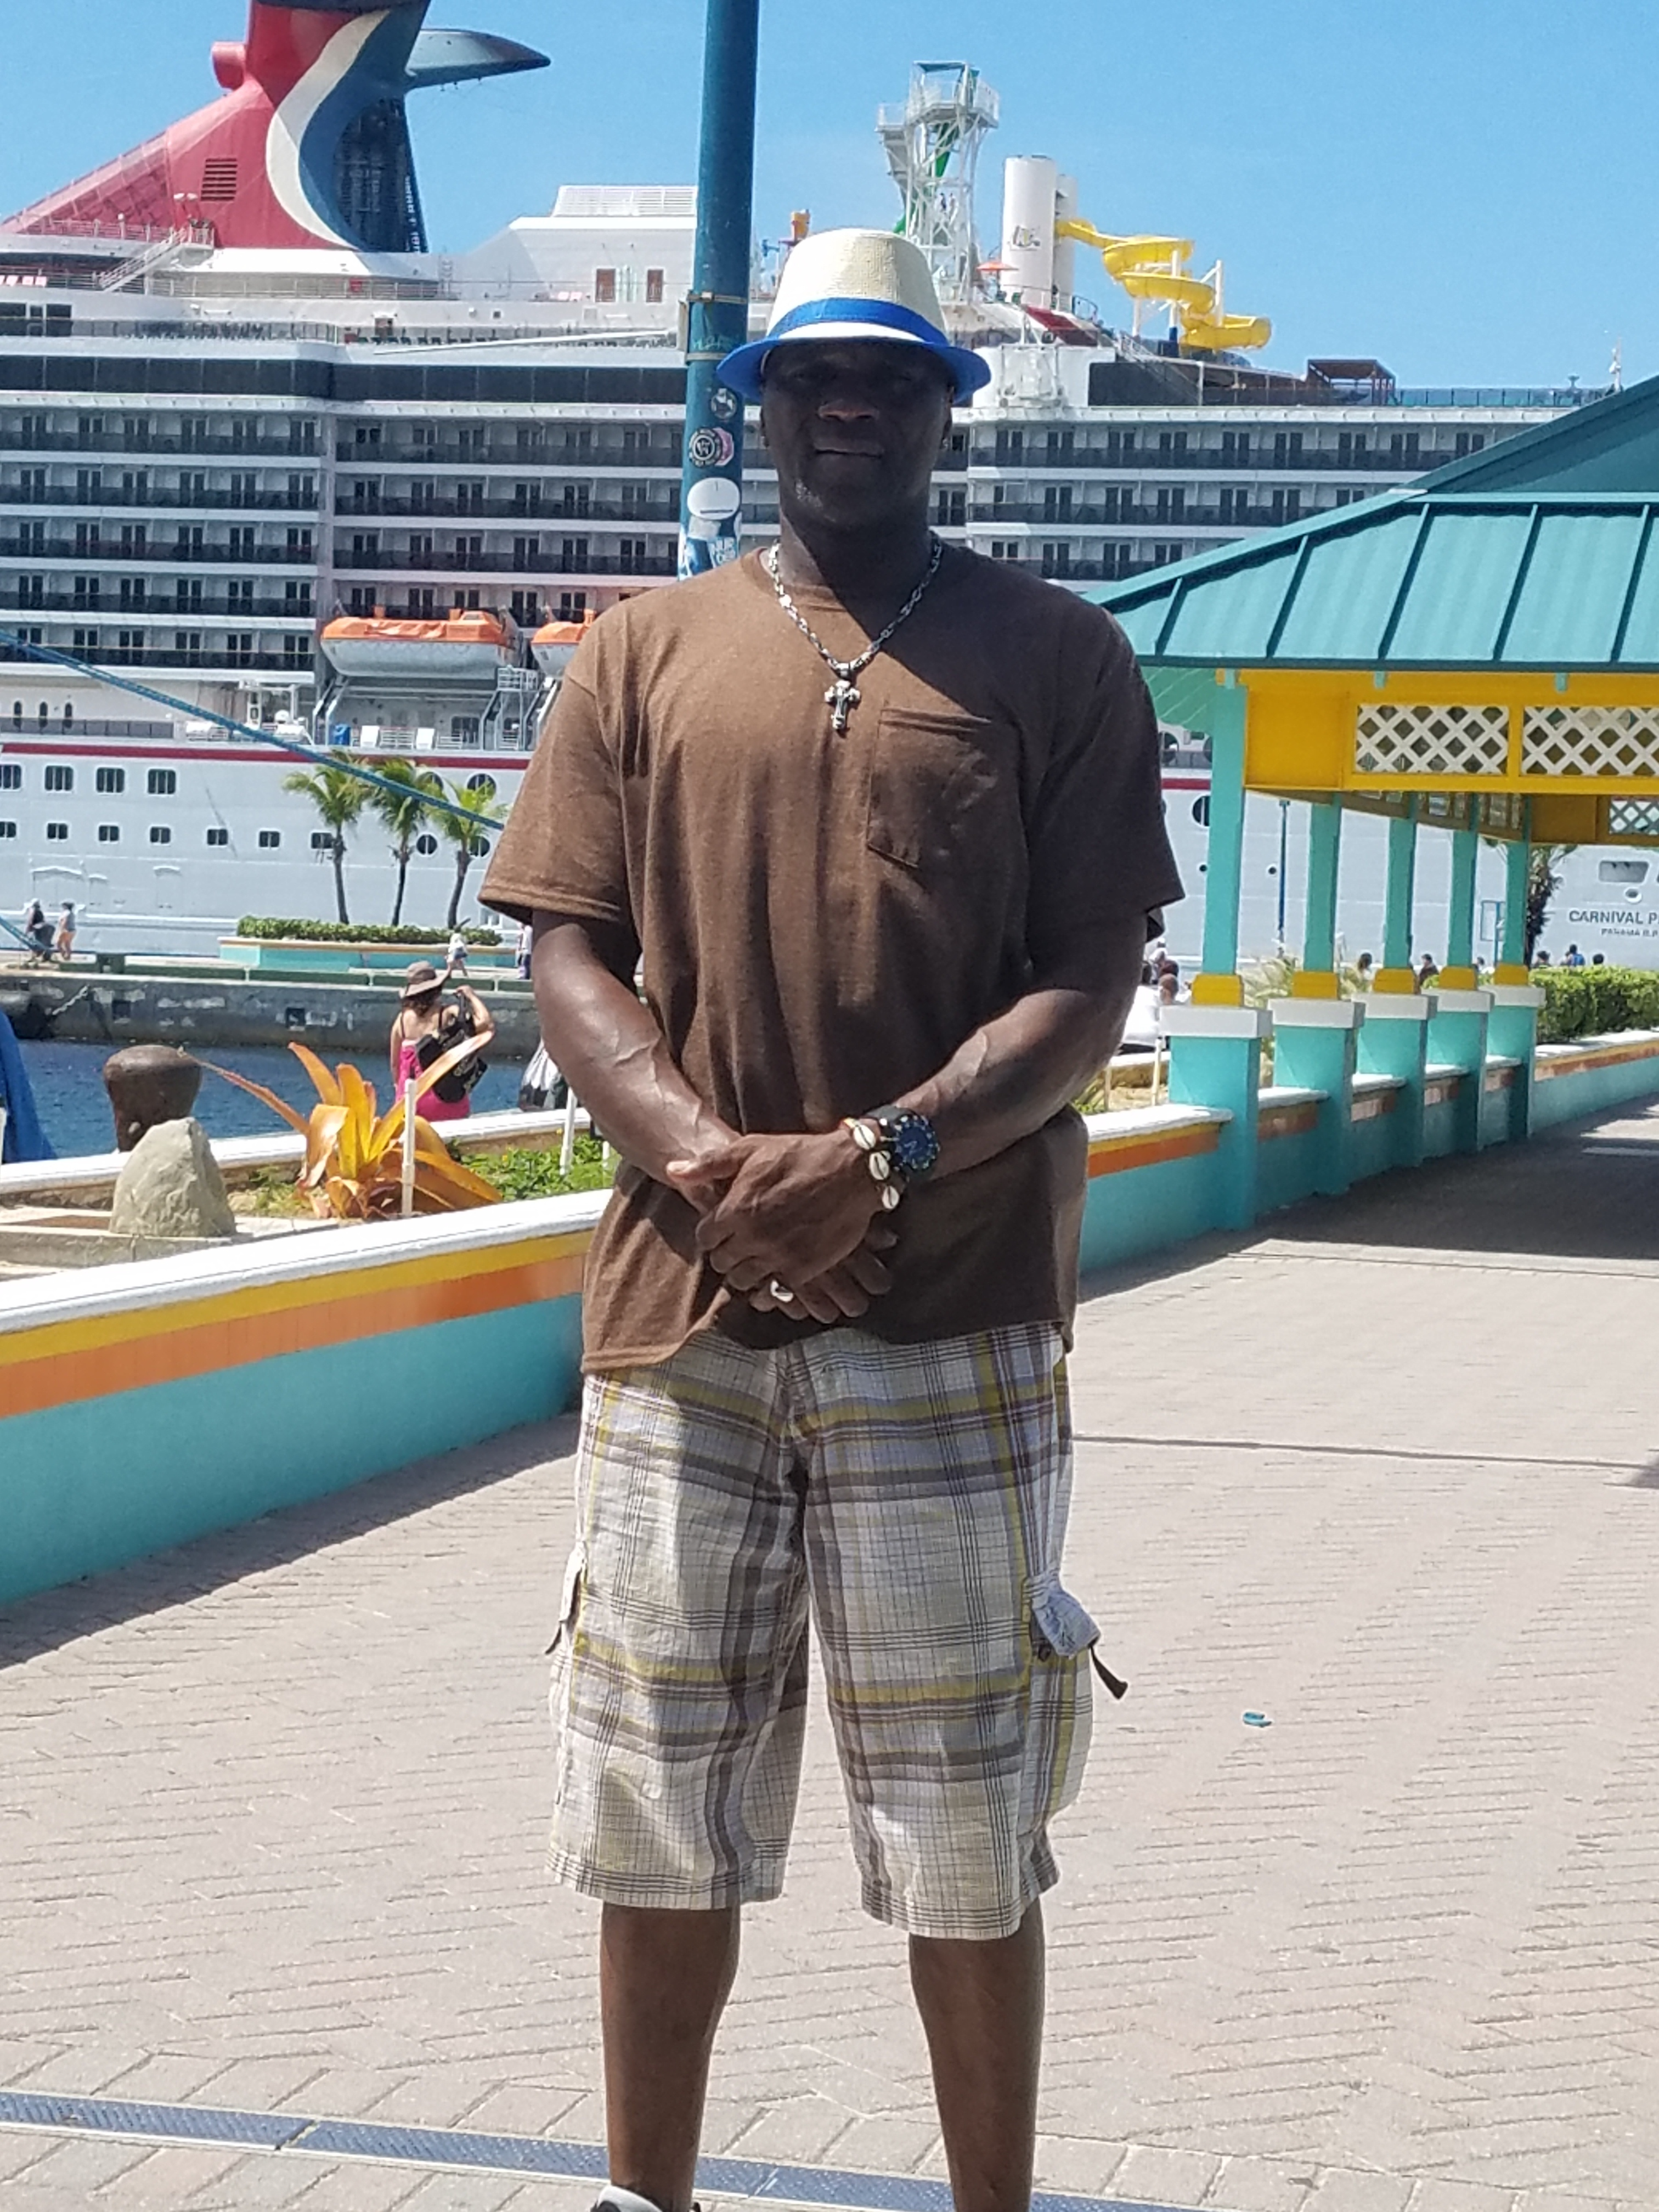 Carnival pride cruise review may 29 2016 i loved it